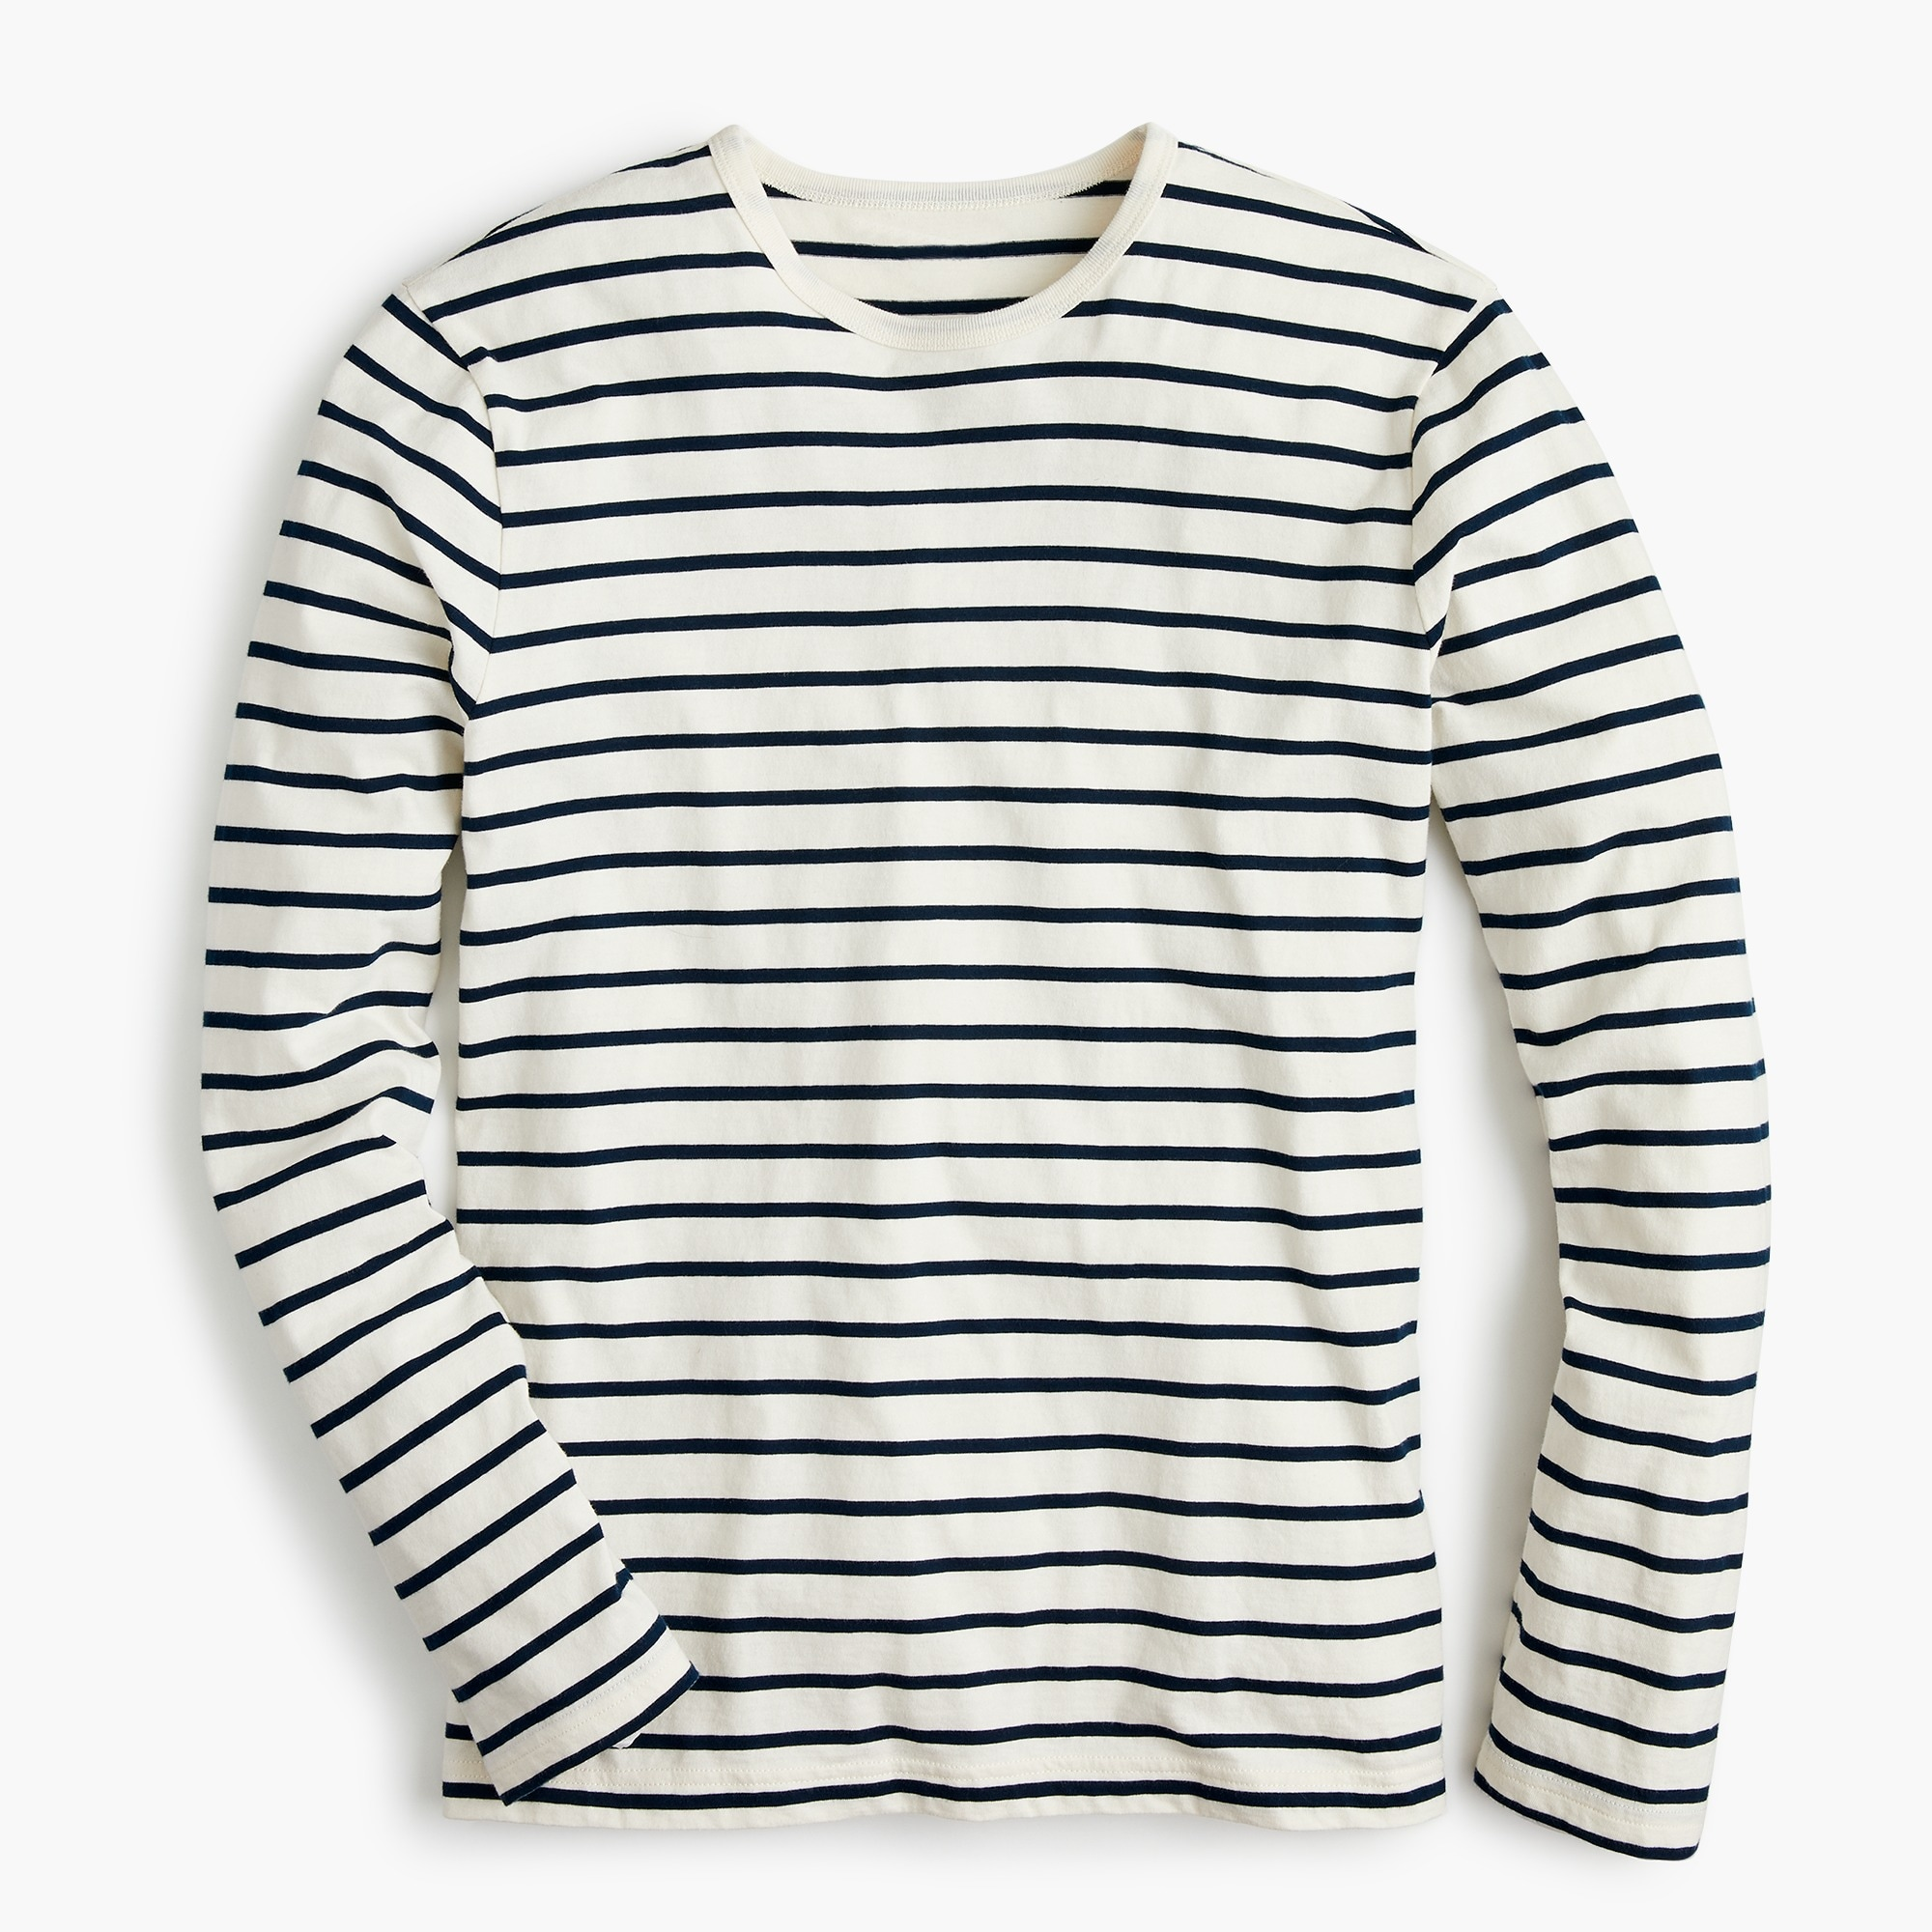 Tall J.Crew Mercantile Broken-in long-sleeve T-shirt in deck stripe